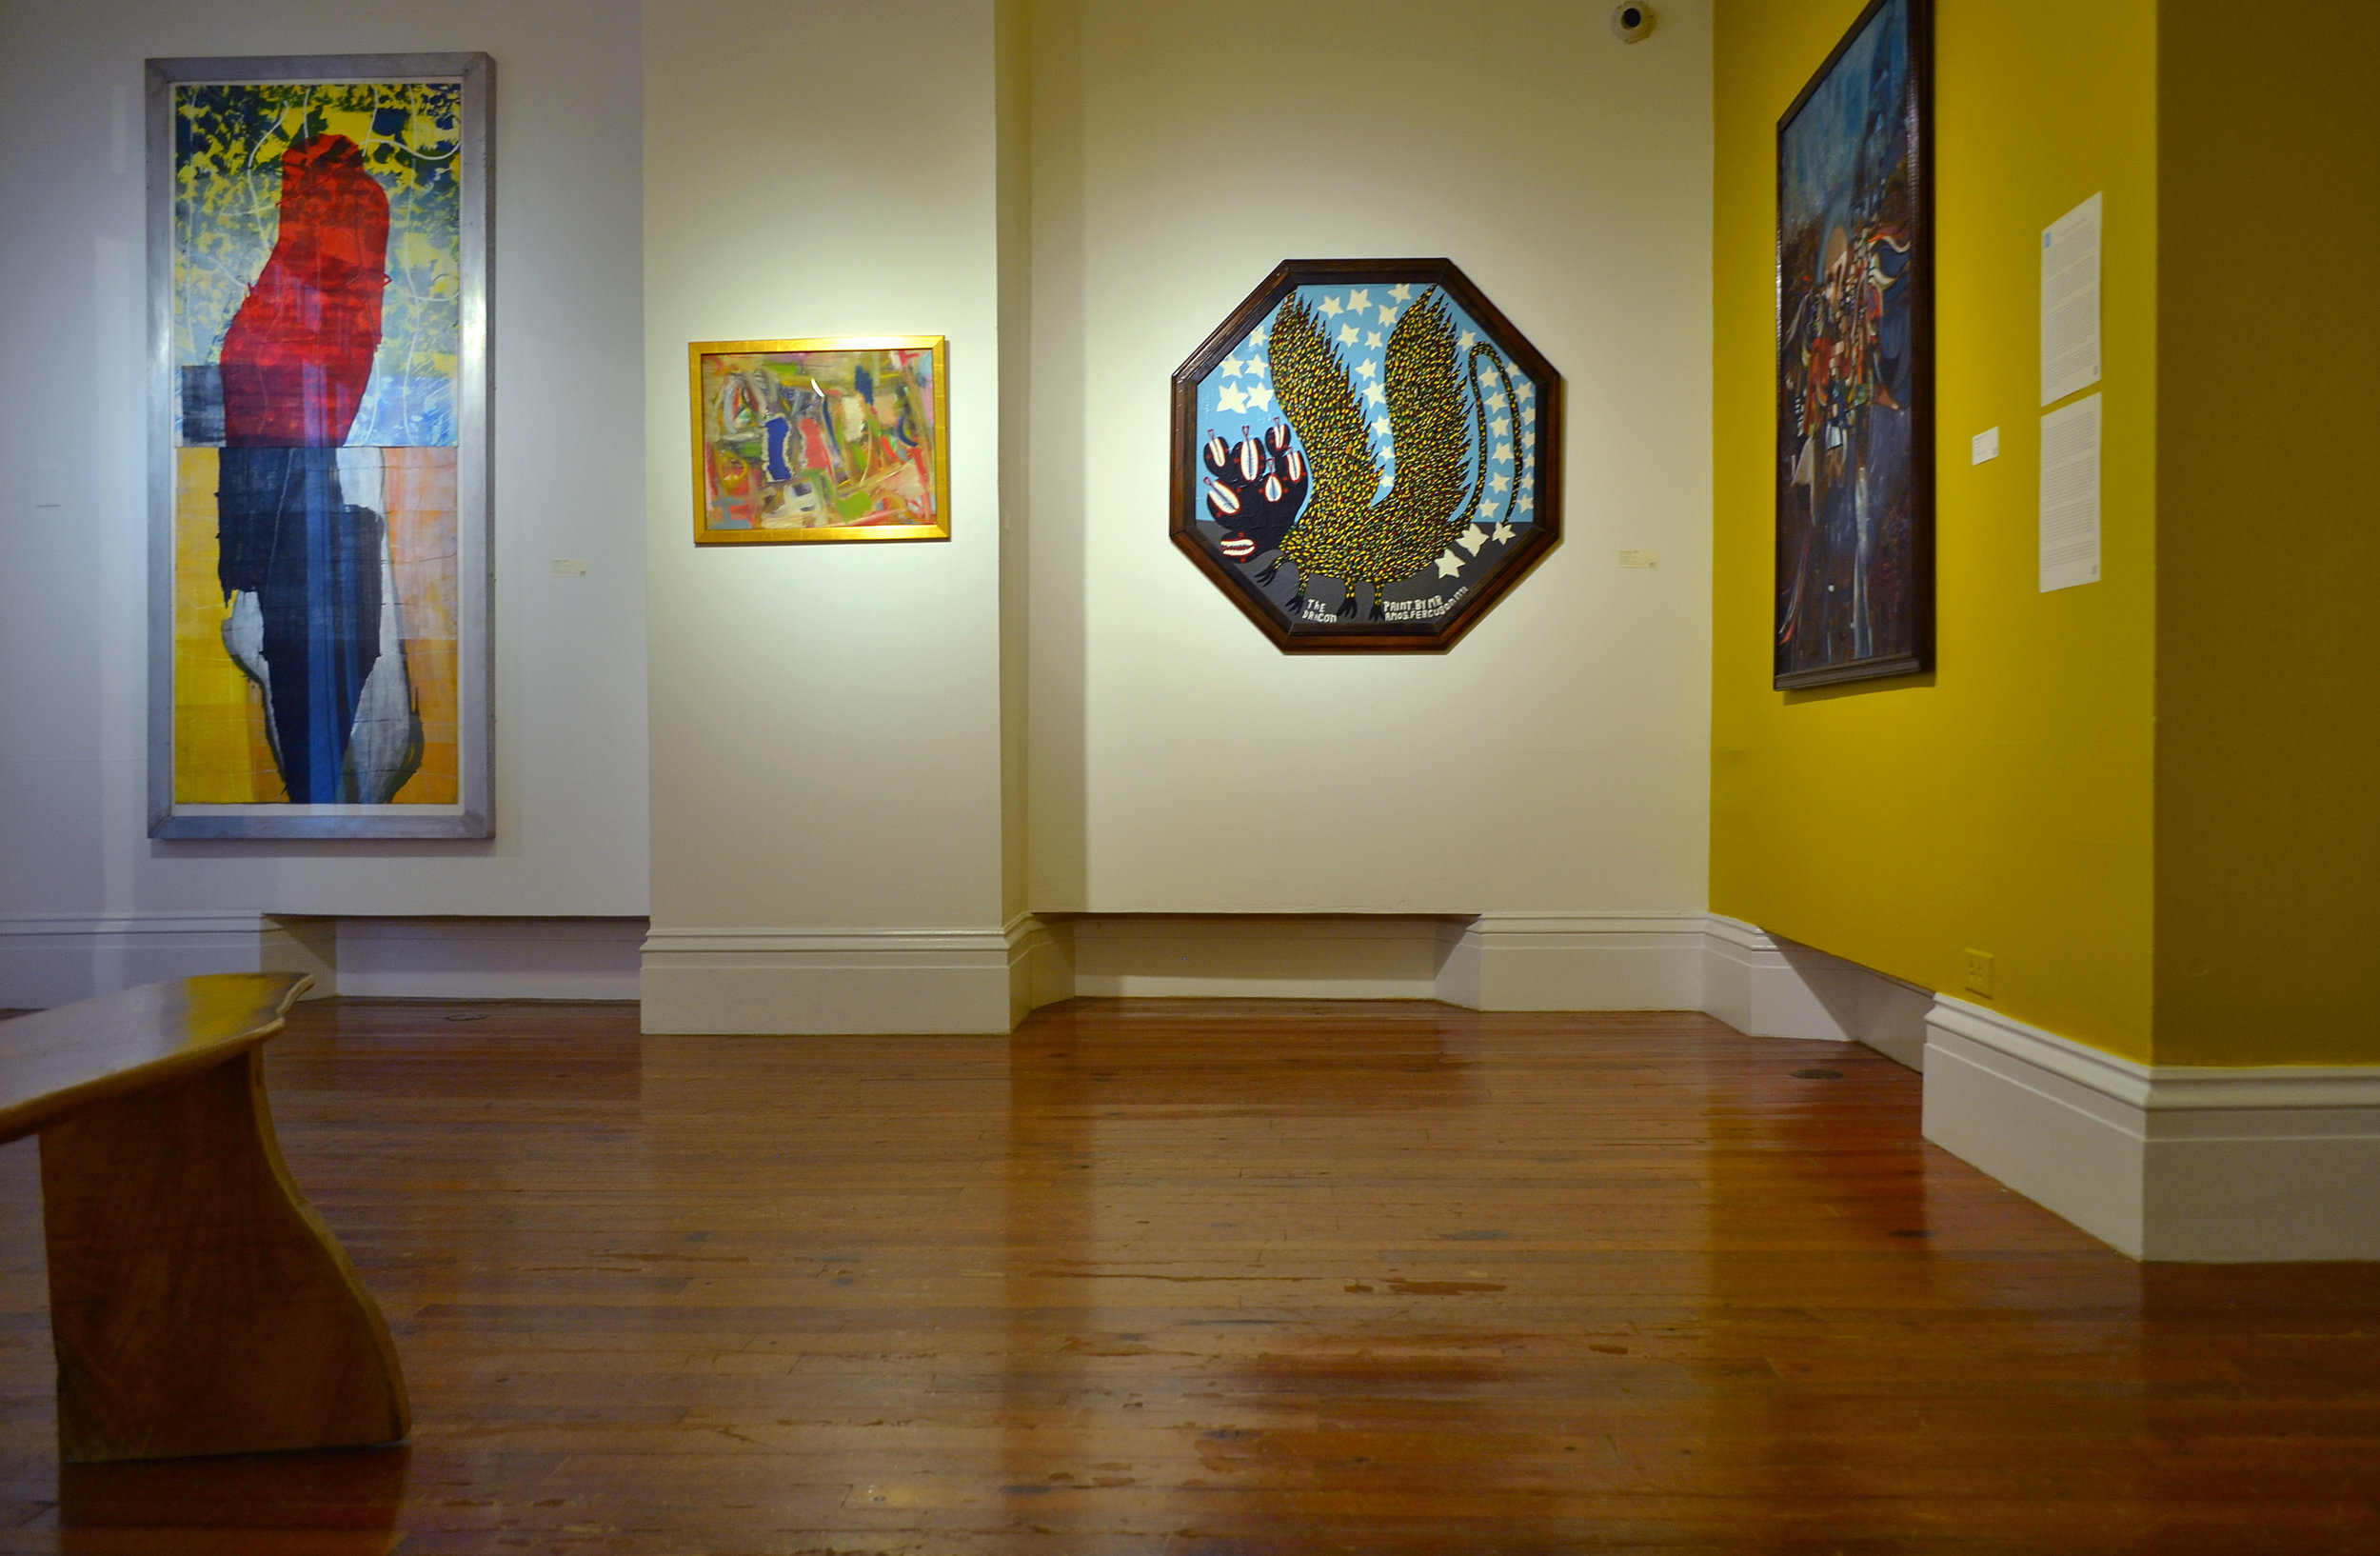 """Installation shot of """"The Dragon"""" (1991) by Amos Ferguson, as seen in the current Permanent Exhibition """"Revisiting An Eye For The Tropics"""". Image courtesy of the NAGB."""